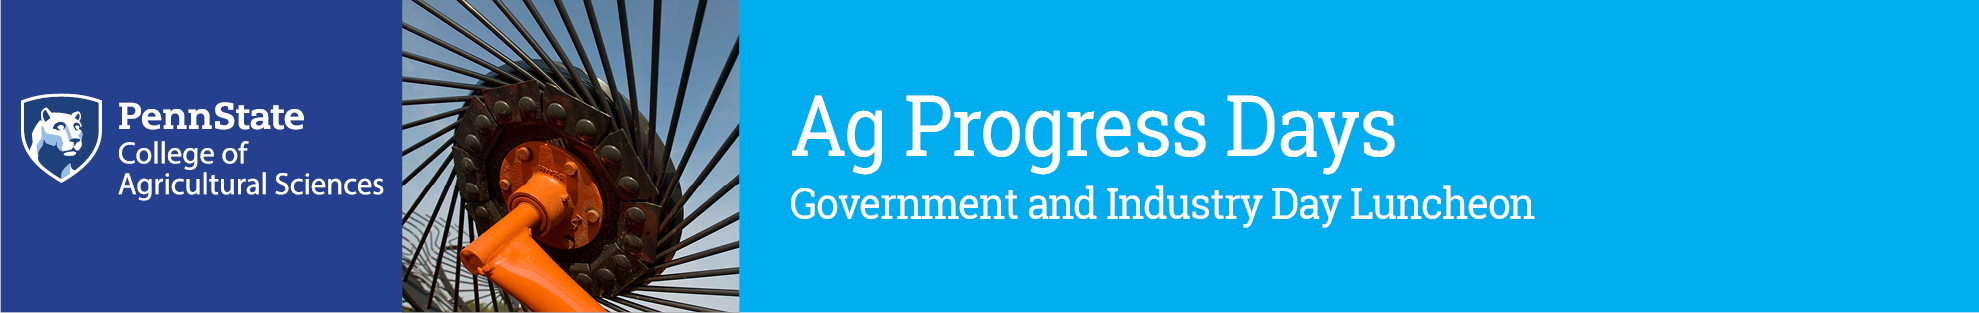 2017 Ag Progress Days Government/Industry Day Luncheon